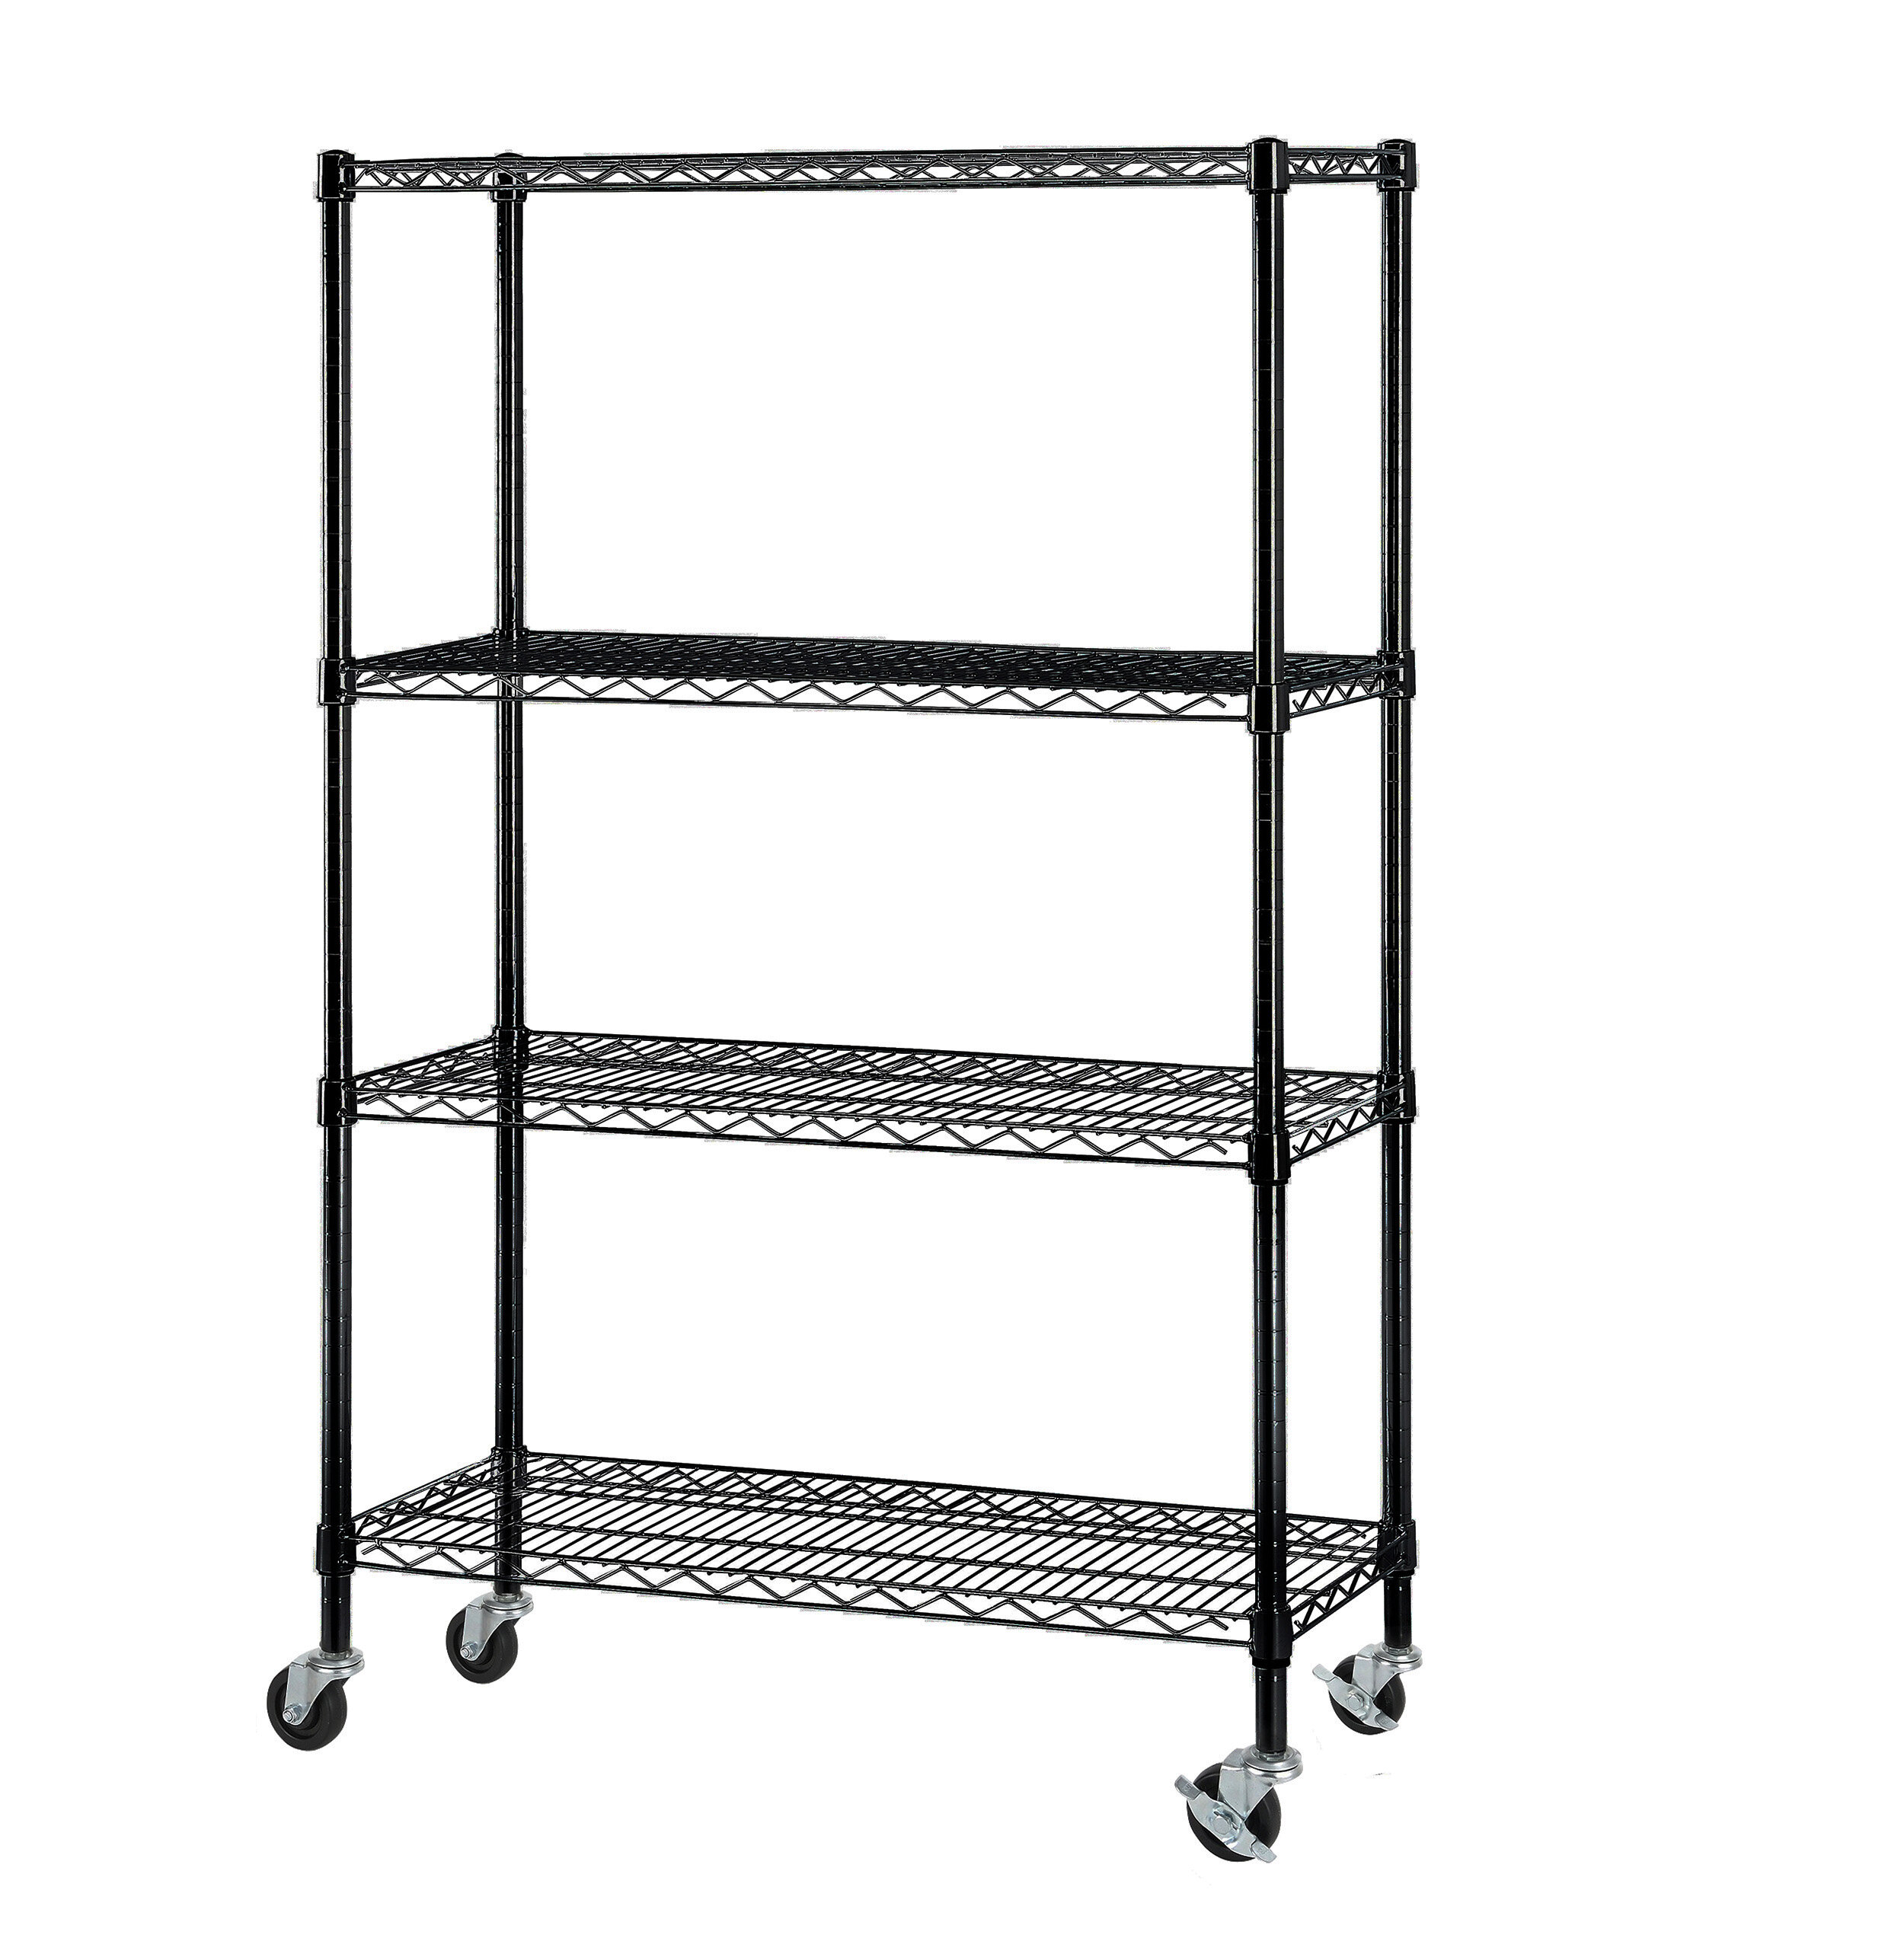 Excel 4-Tier Wire Shelving Unit with Caster & Reviews | Wayfair